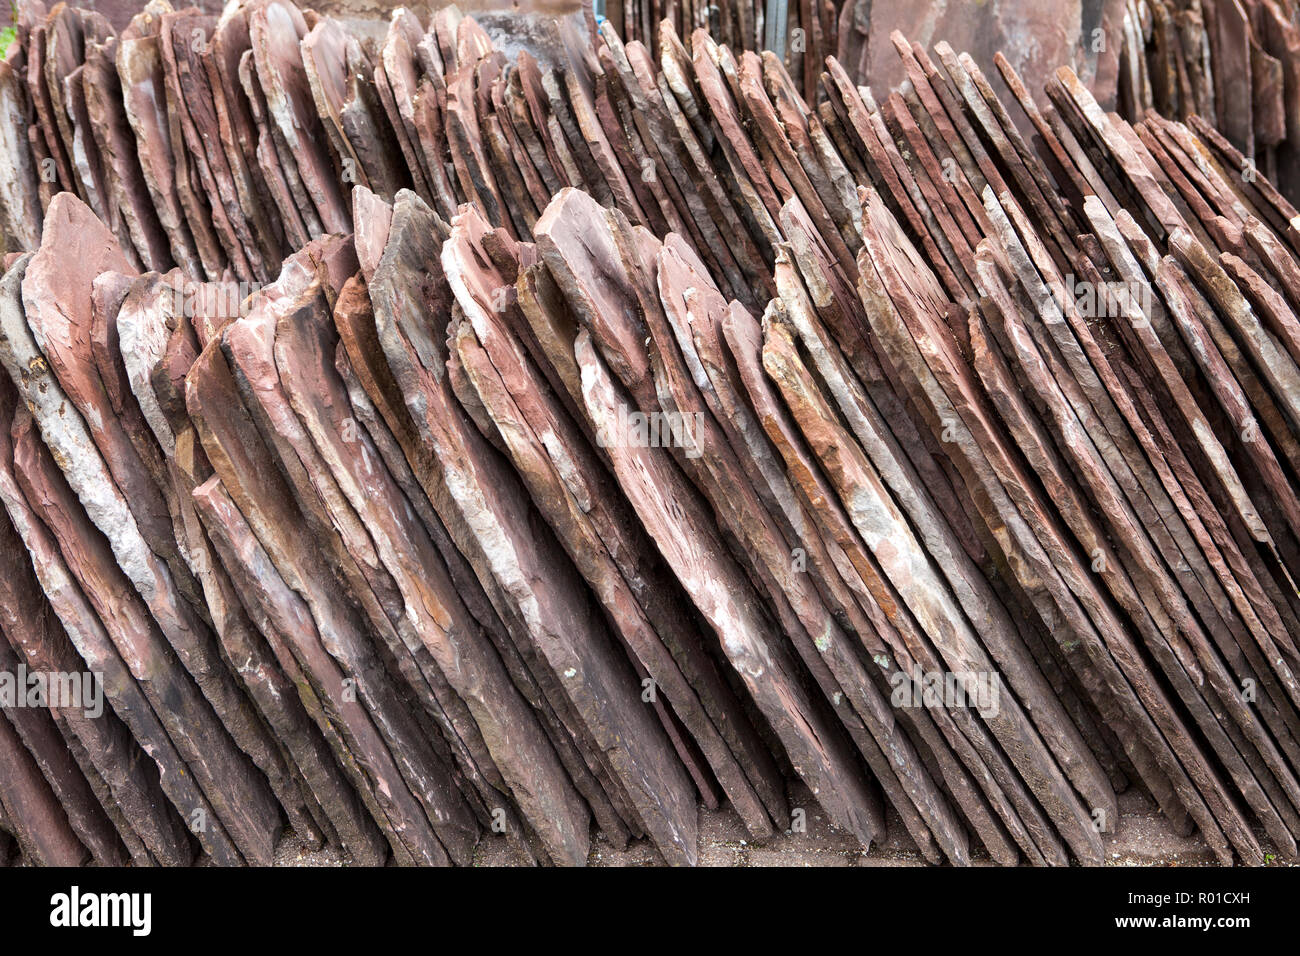 Old red sandstone roofing tiles, Bodenwerder, Weserbergland, Lower Saxony, Germany, Europe - Stock Image